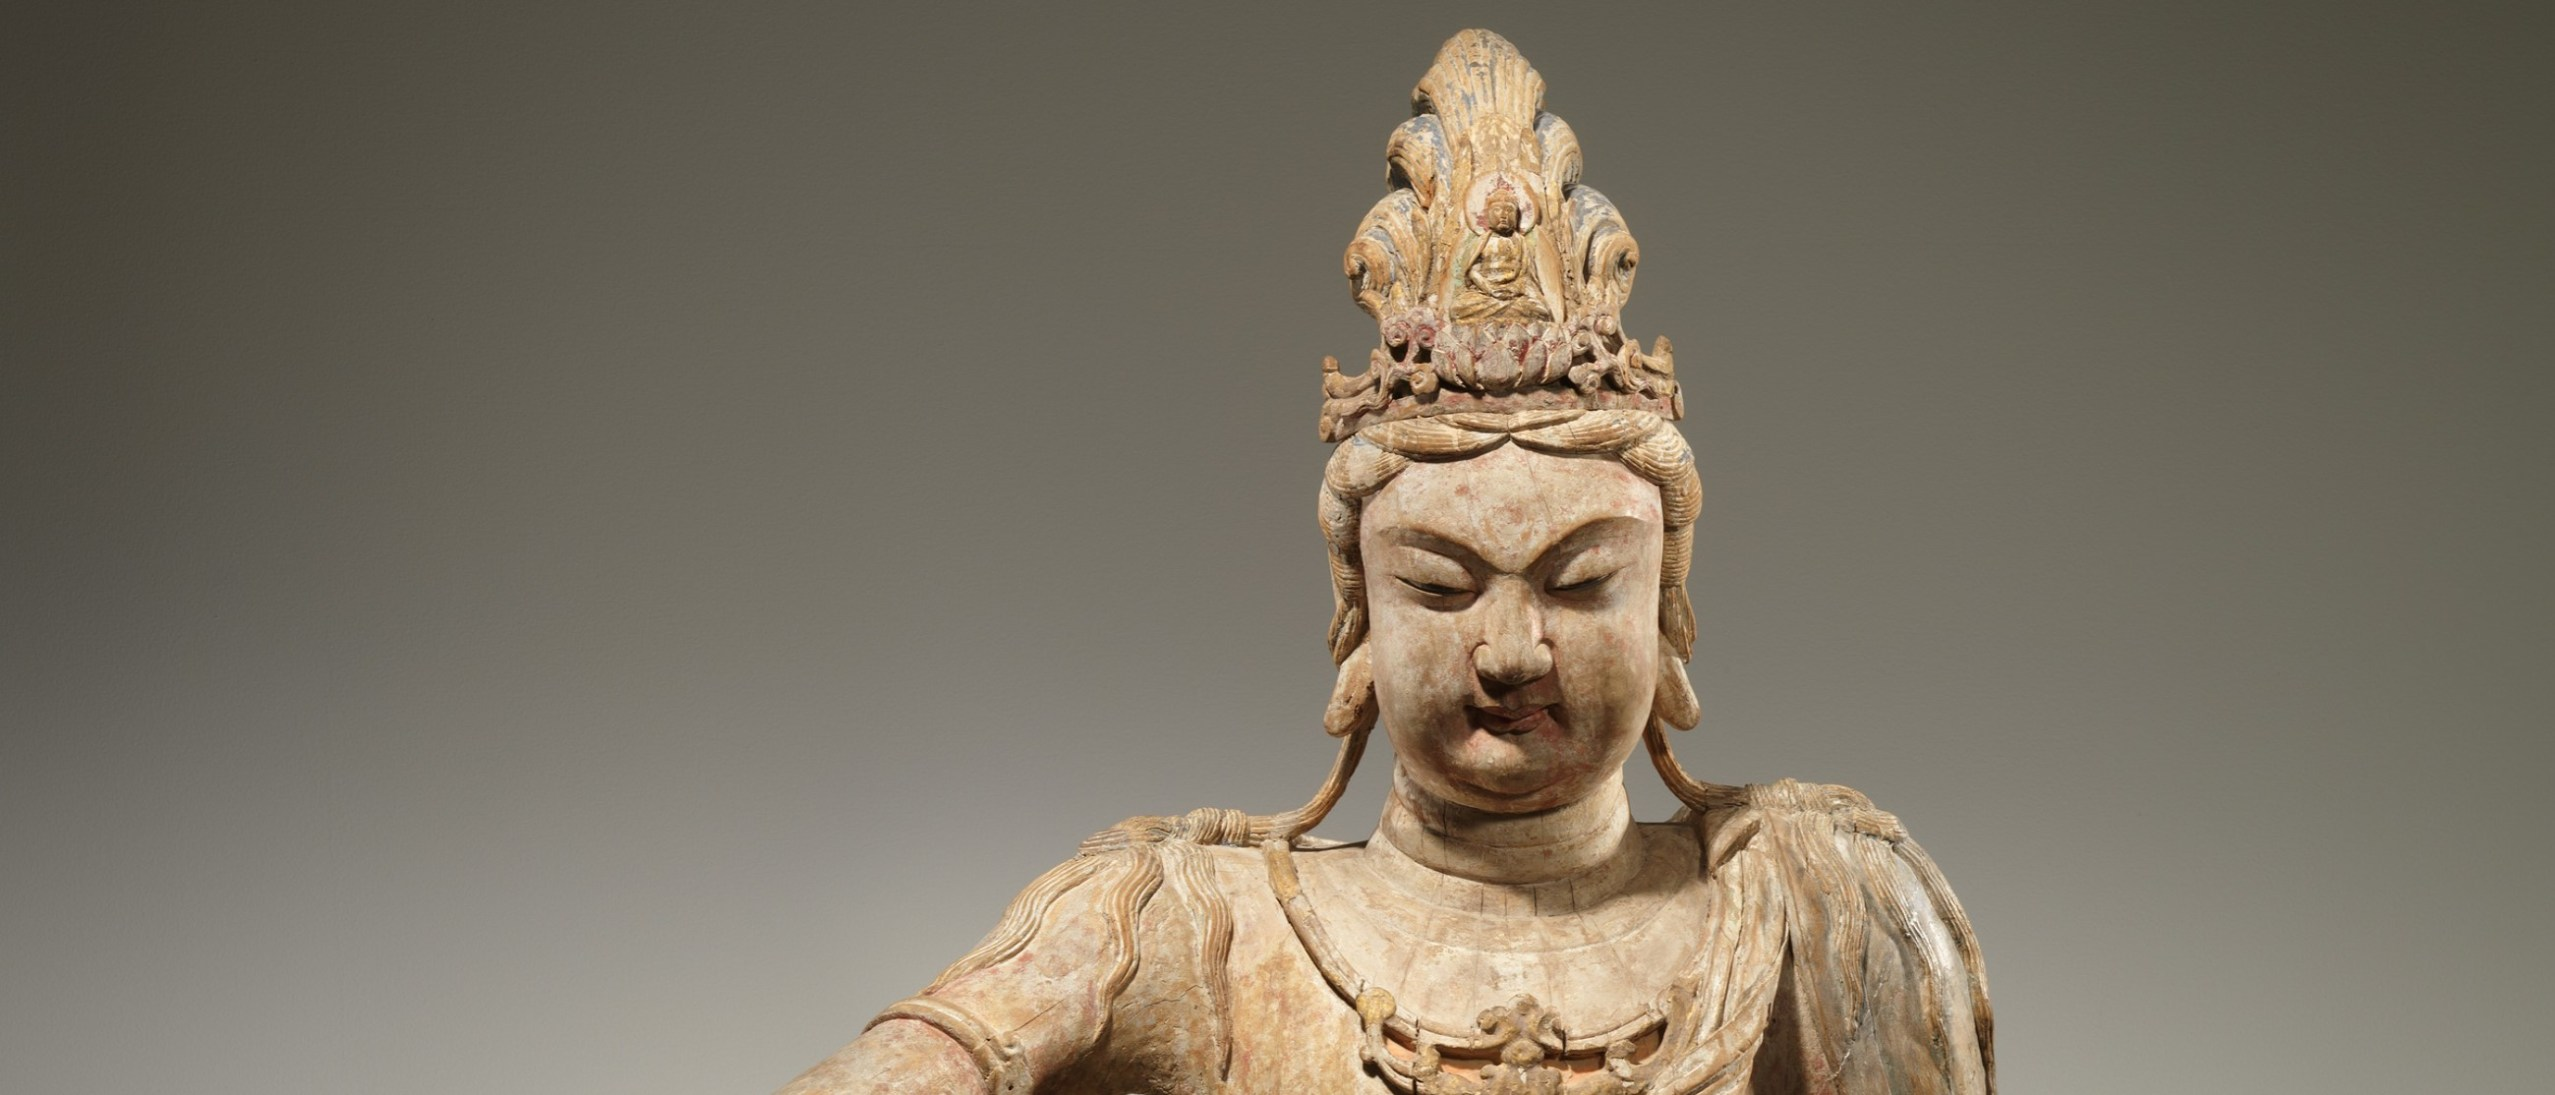 Head and shoulders detail of female bodhisattva, Guanyin, wearing an ornamental headdress.